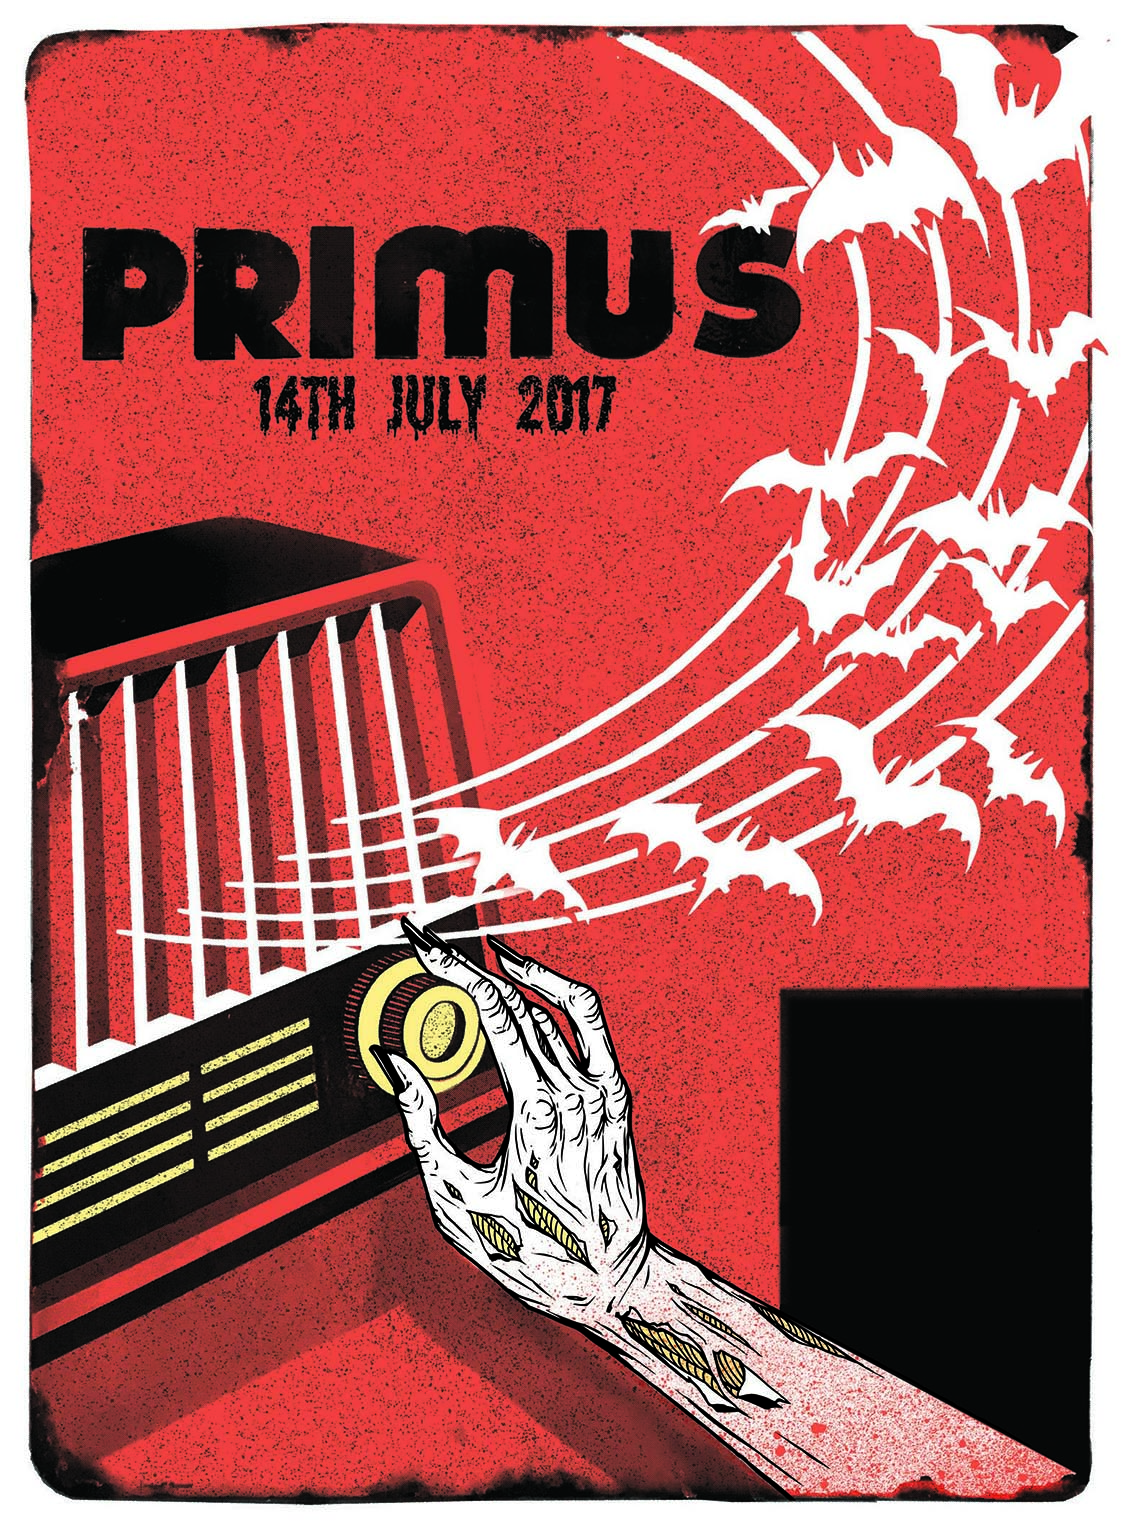 Primus gig poster. 3 Colour screen print '17. Collaboration with Epok